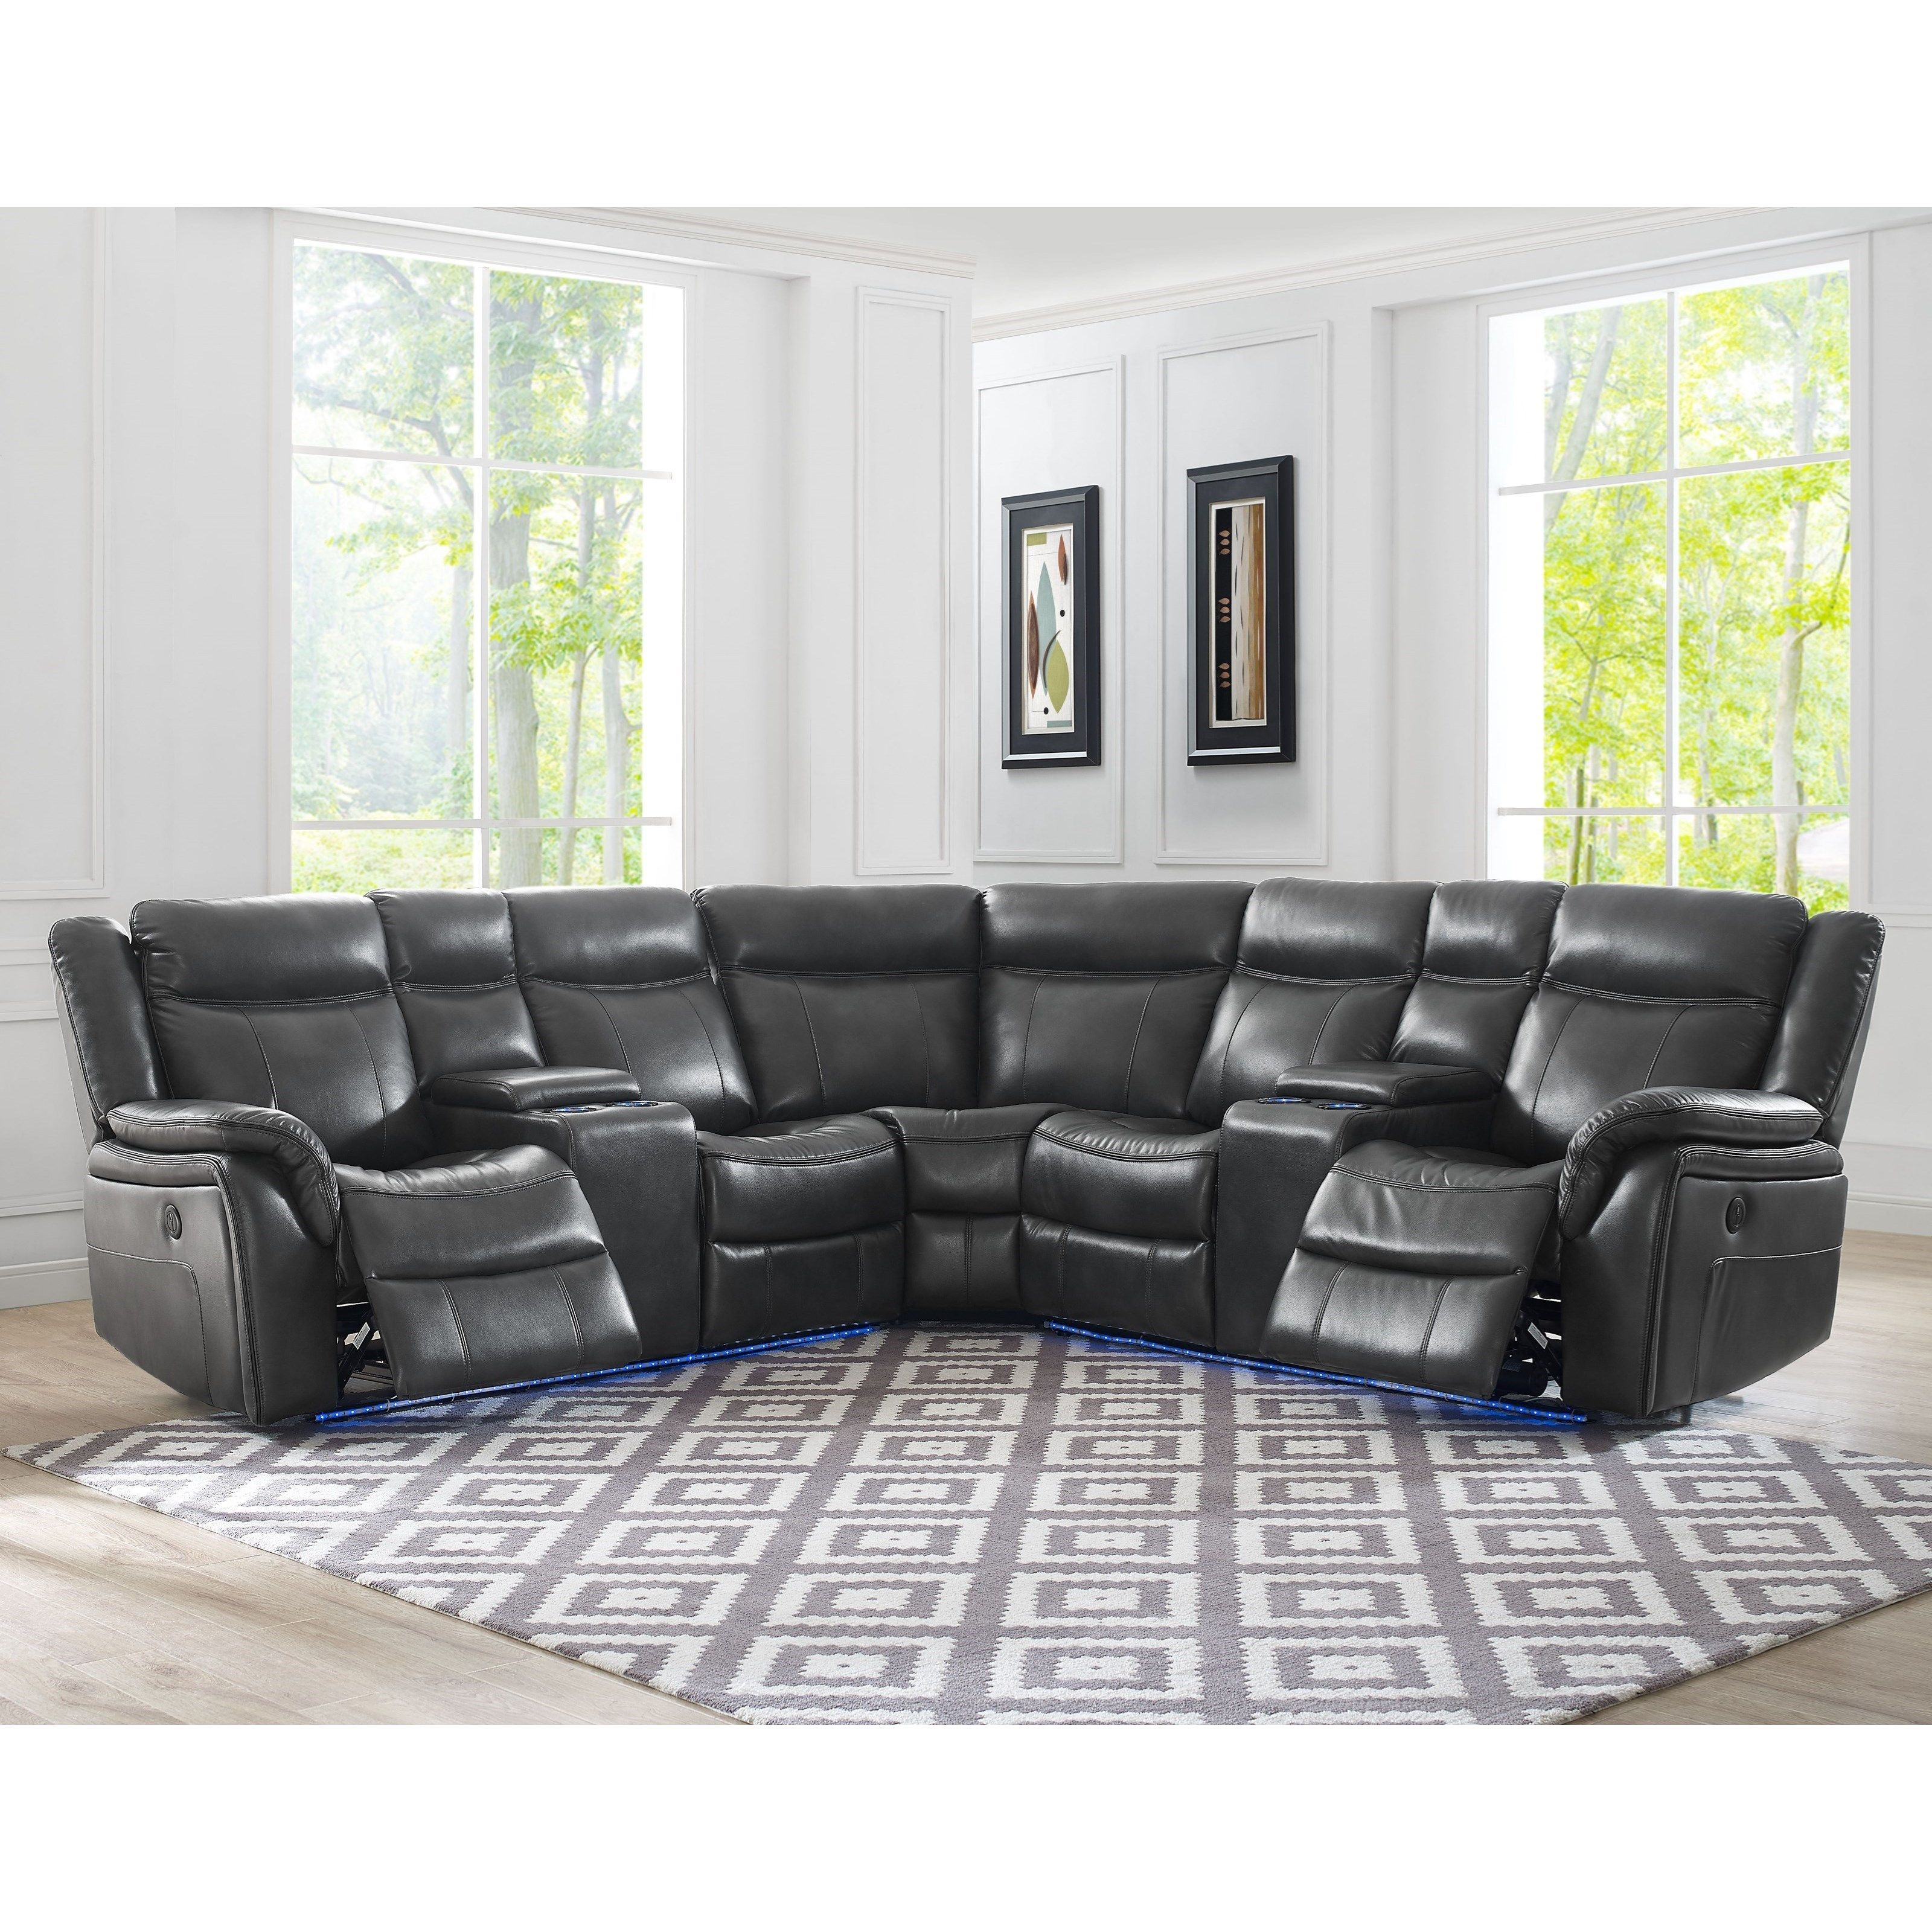 Remarkable Levin 4 Seat Power Reclining Sectional Sofa With Theater Machost Co Dining Chair Design Ideas Machostcouk